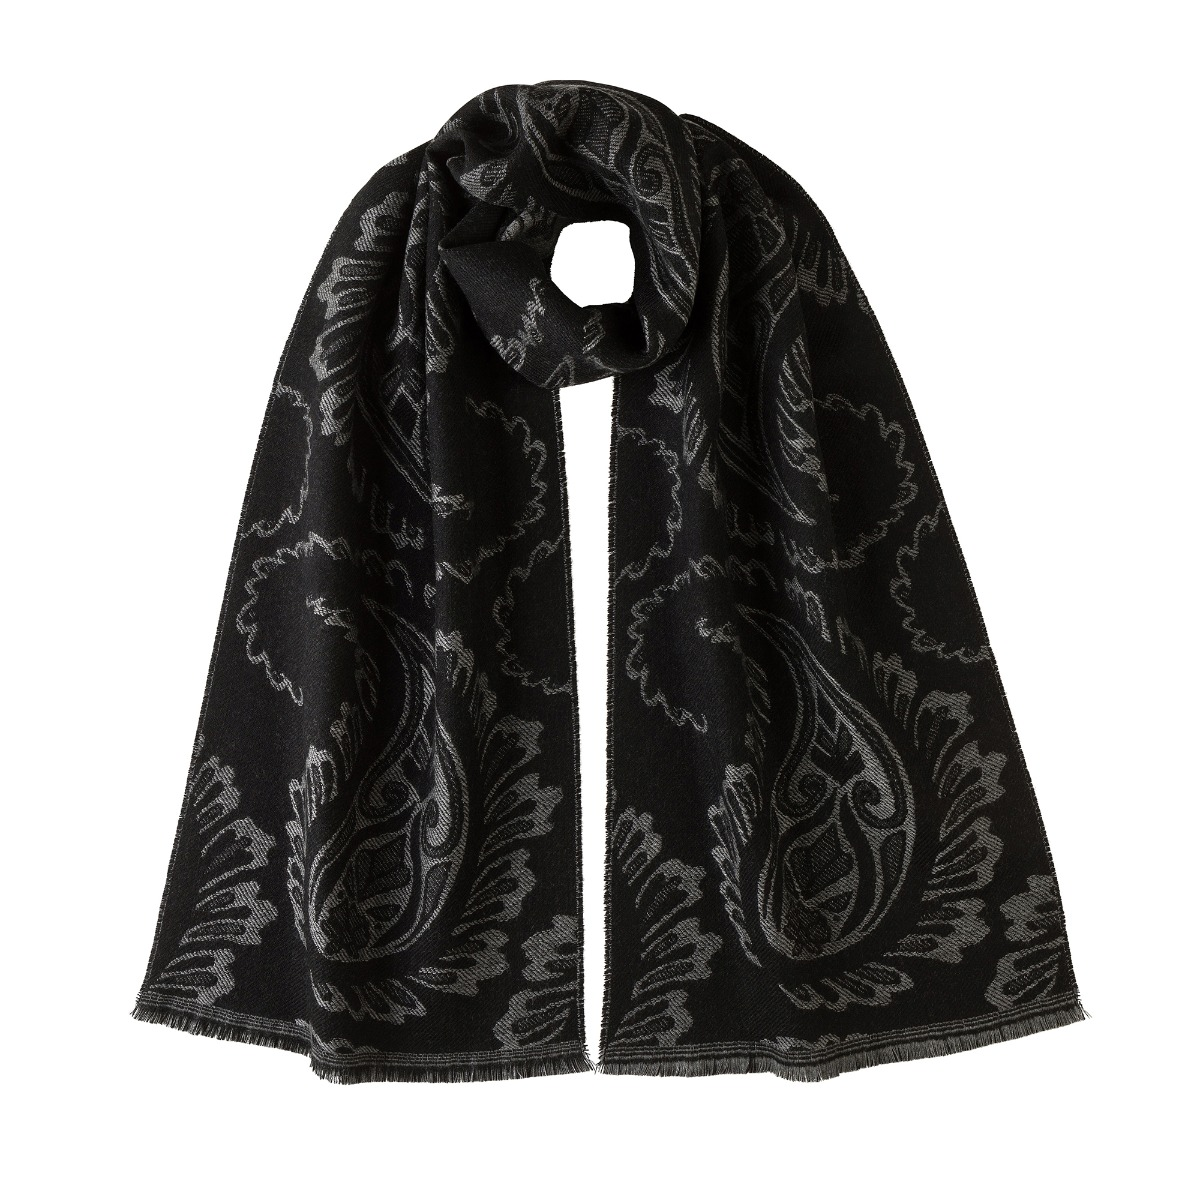 Black and grey paisley cashmere scarf